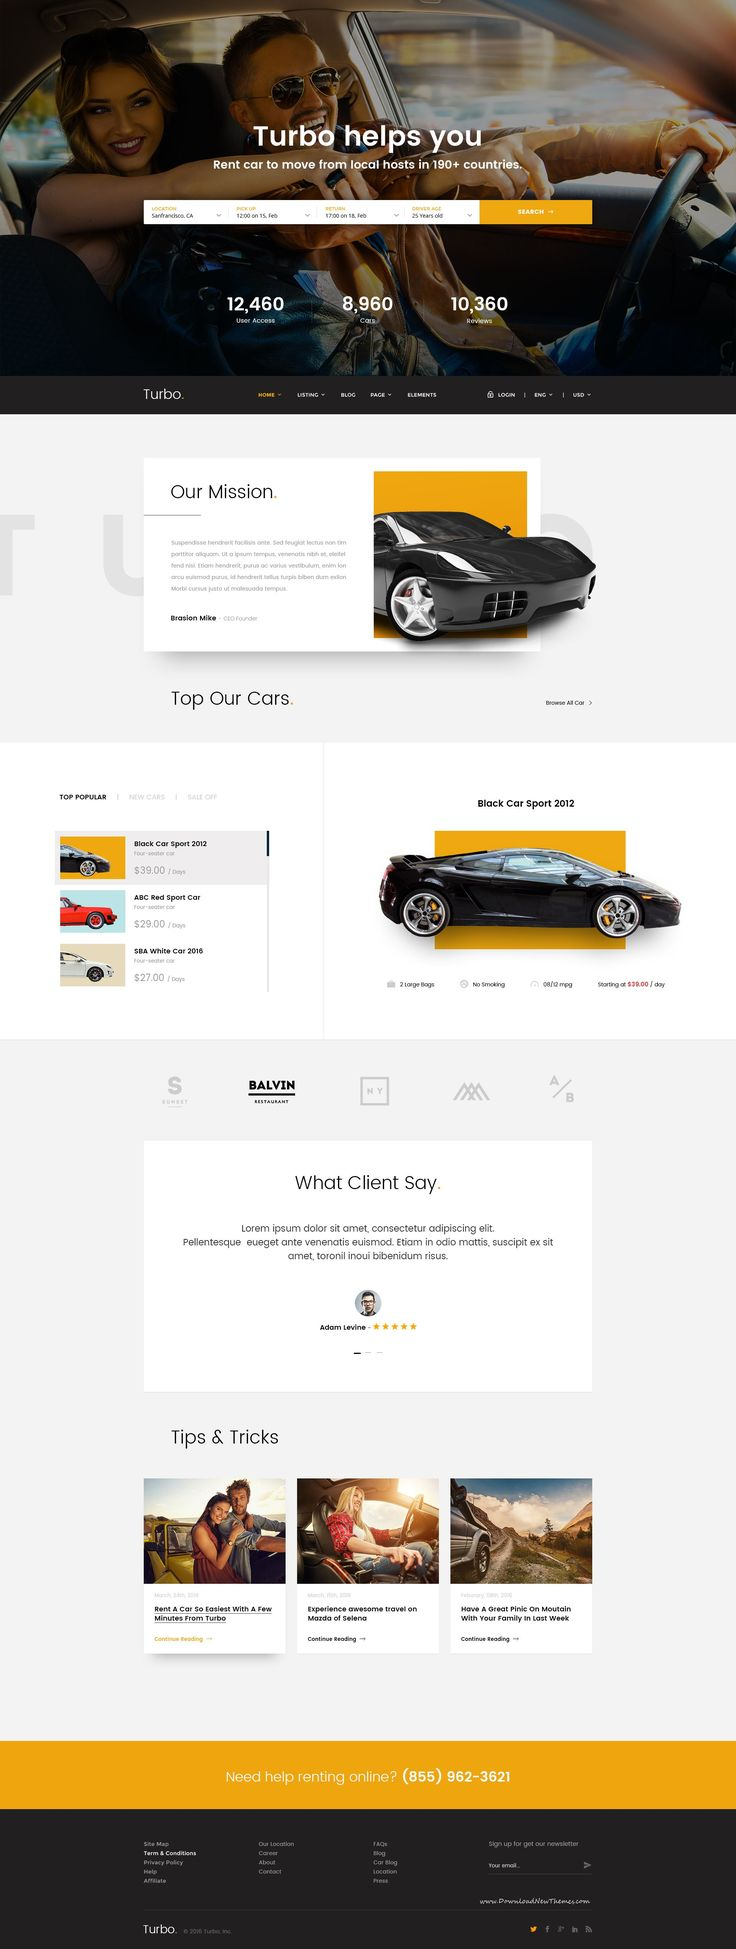 Turbo is a Car Rental PSD Template designed with Grid-Based Approach. With modern and creative design, you can convert this template to CMSs like WordPress, HTML, Joomla or other systems for car rental and booking website. #automobile #rental #psdtemplate